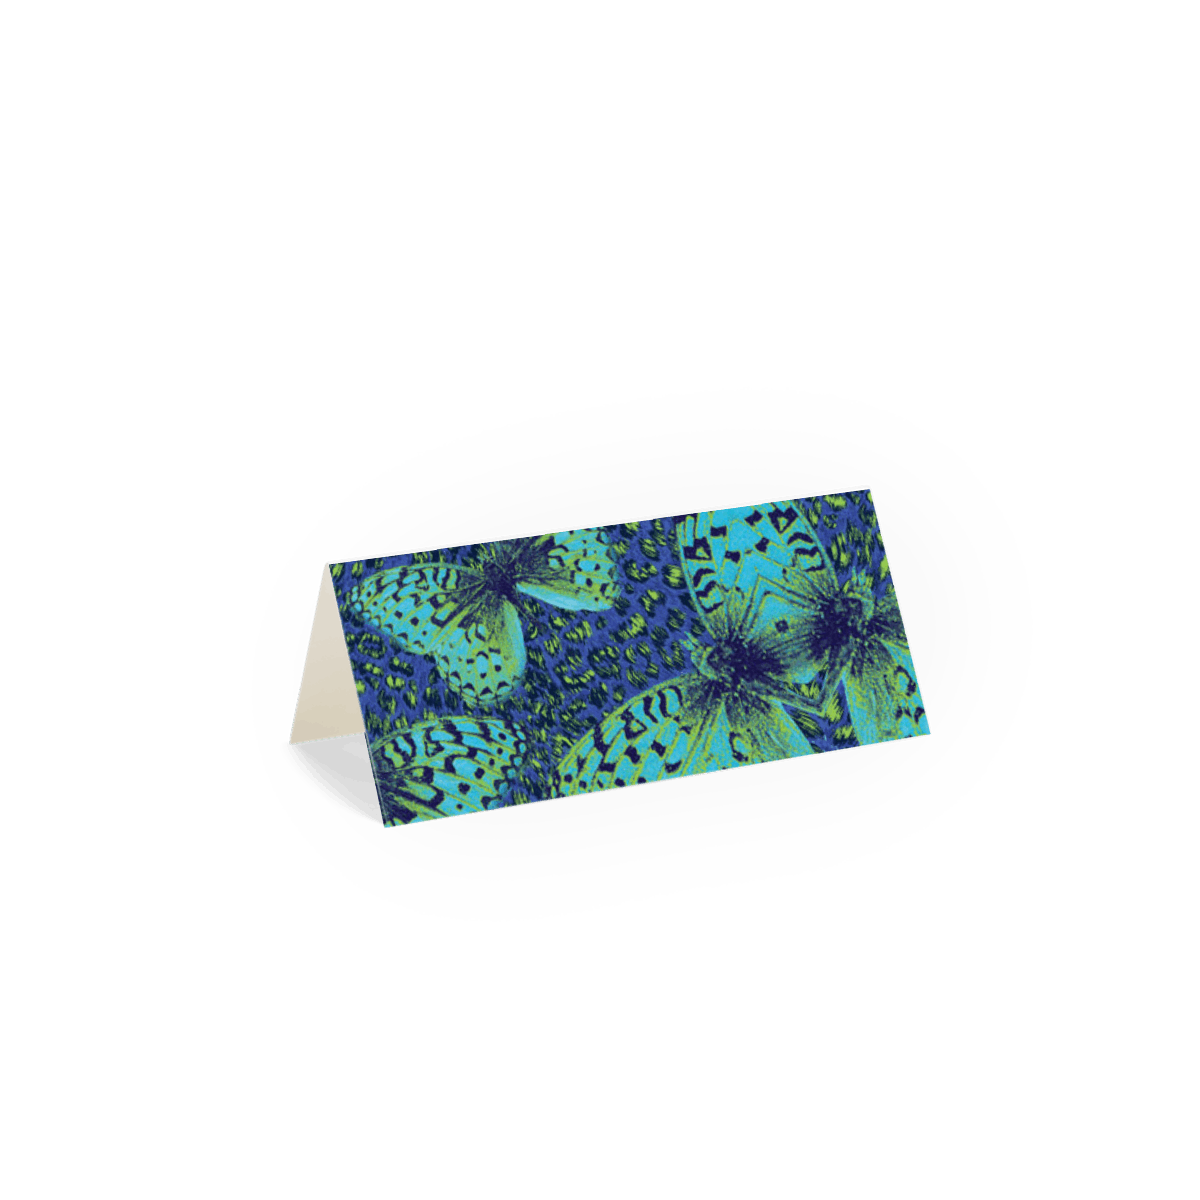 Https%3a%2f%2fwww.papier.com%2fproduct image%2f9385%2f15%2fbutterfly leopard 2360 back 1469281173.png?ixlib=rb 1.1